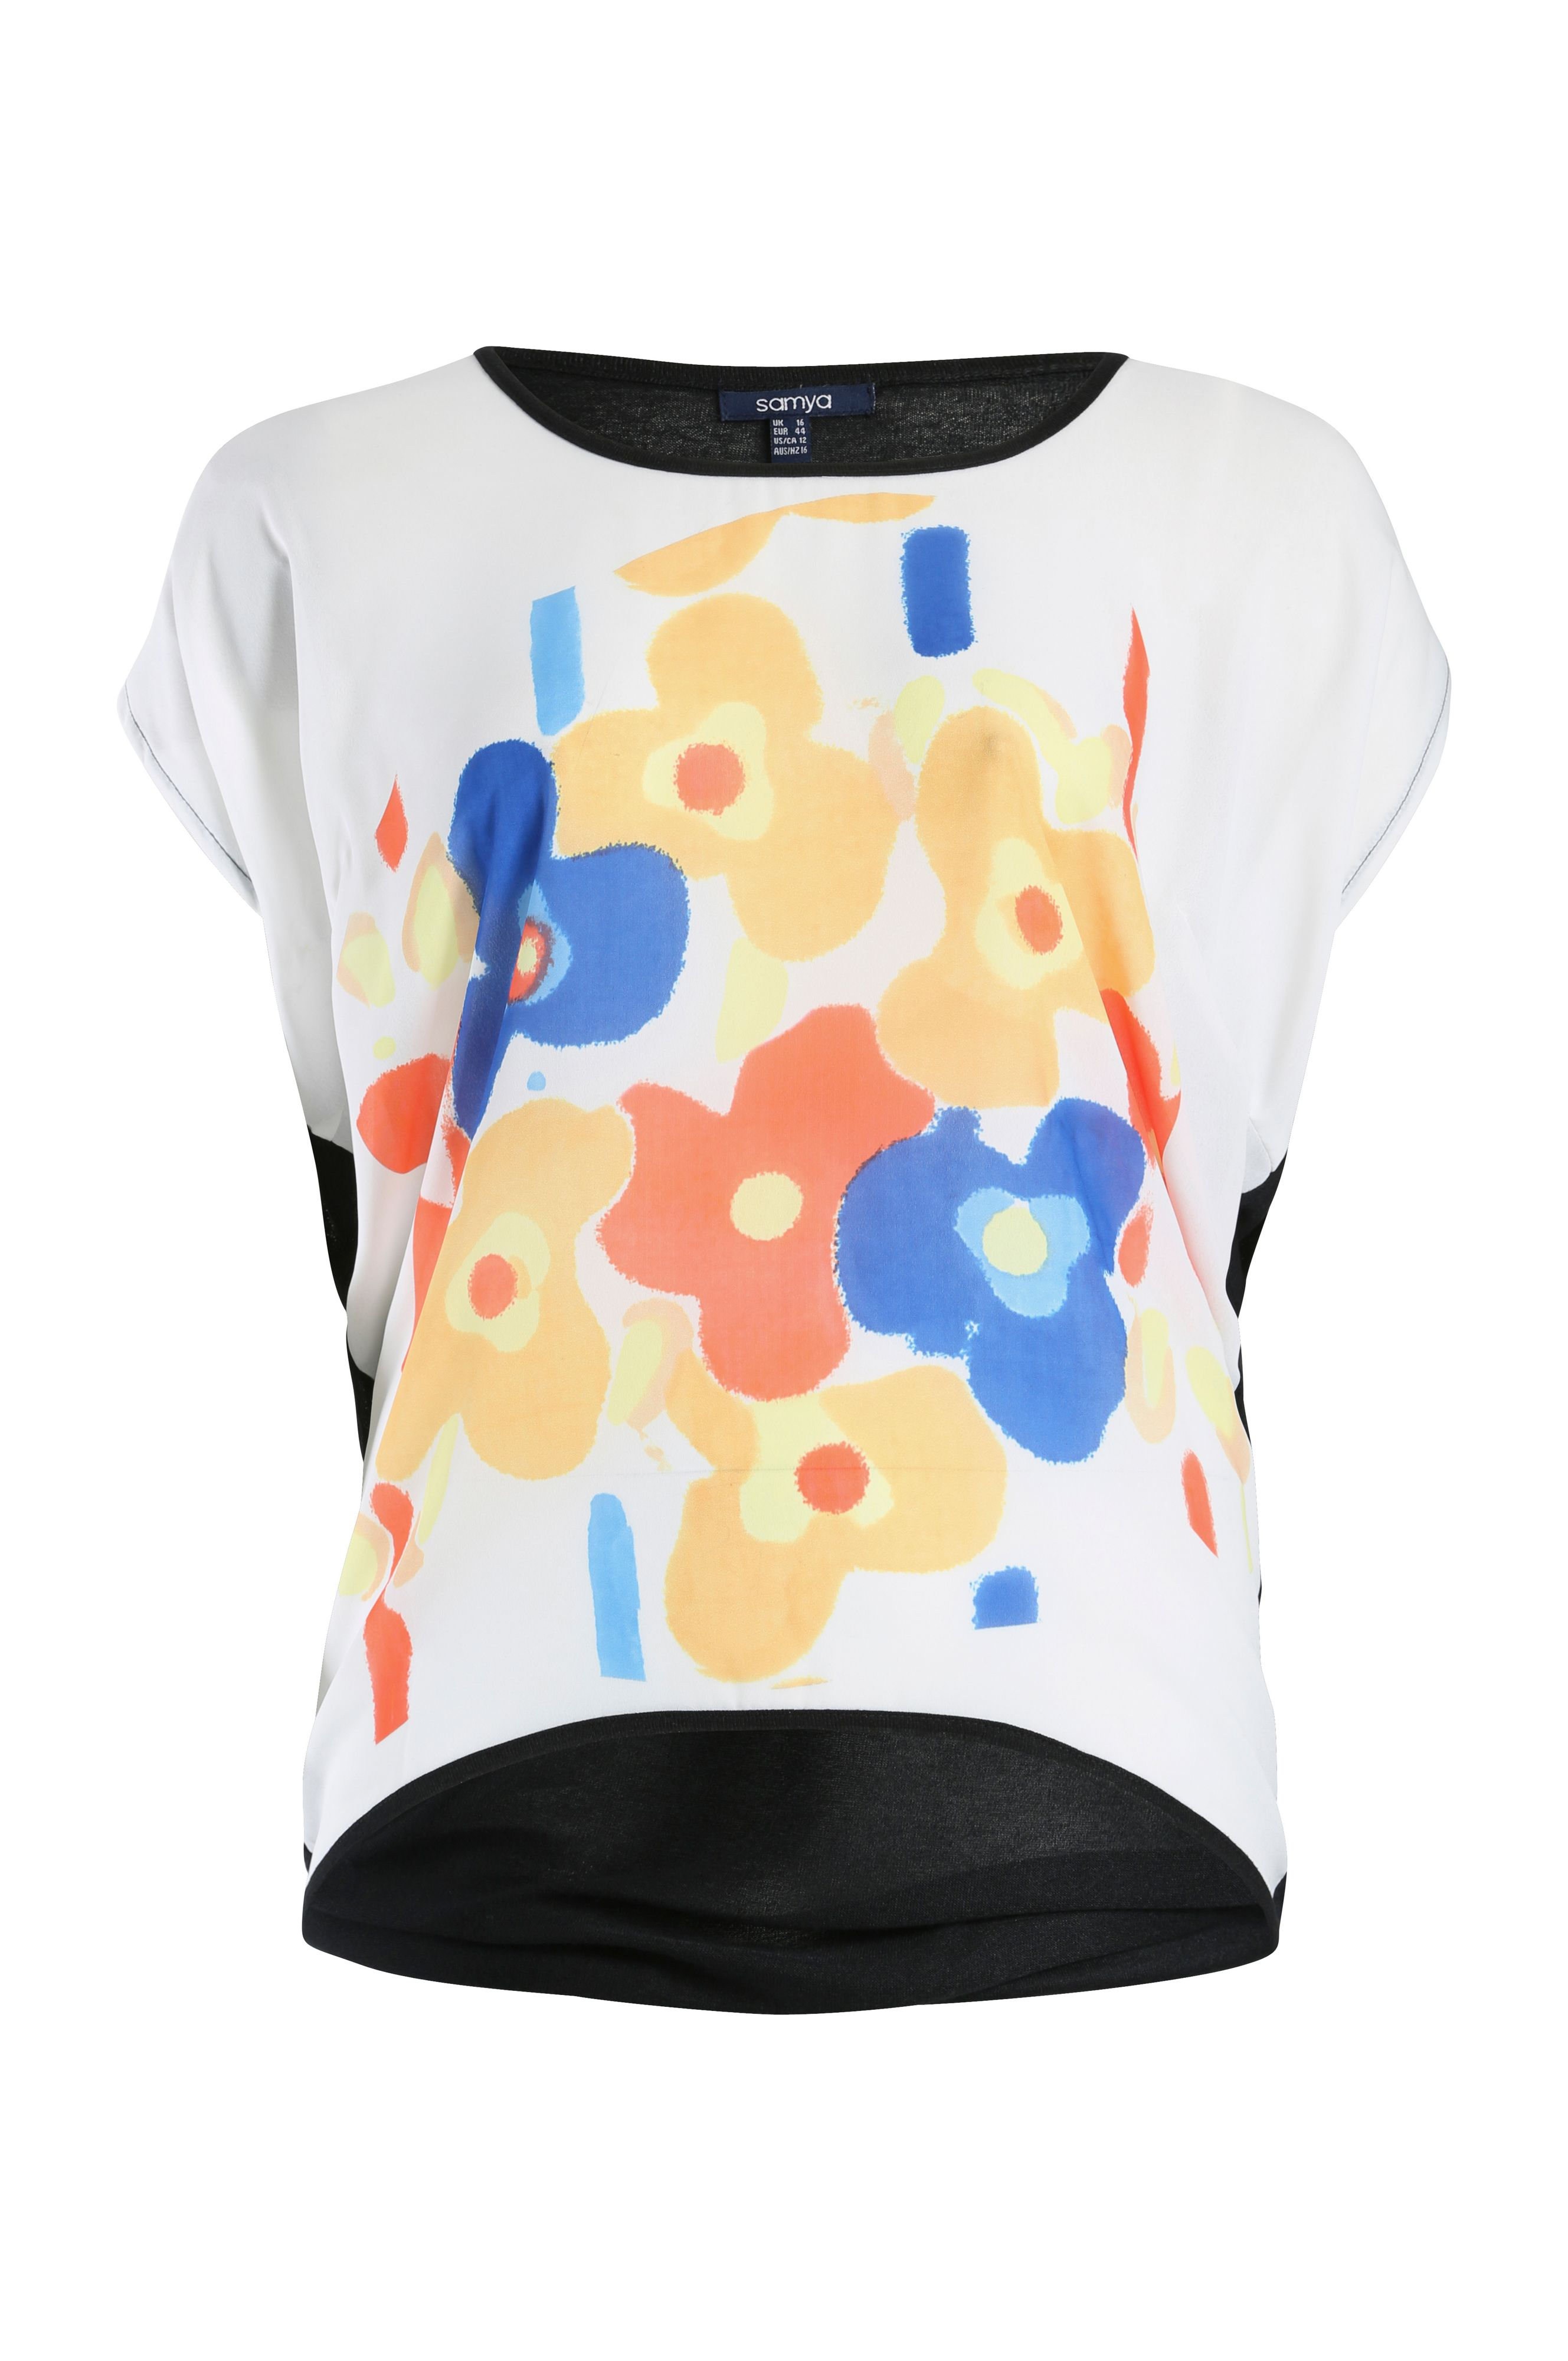 Contemporary floral print knit top